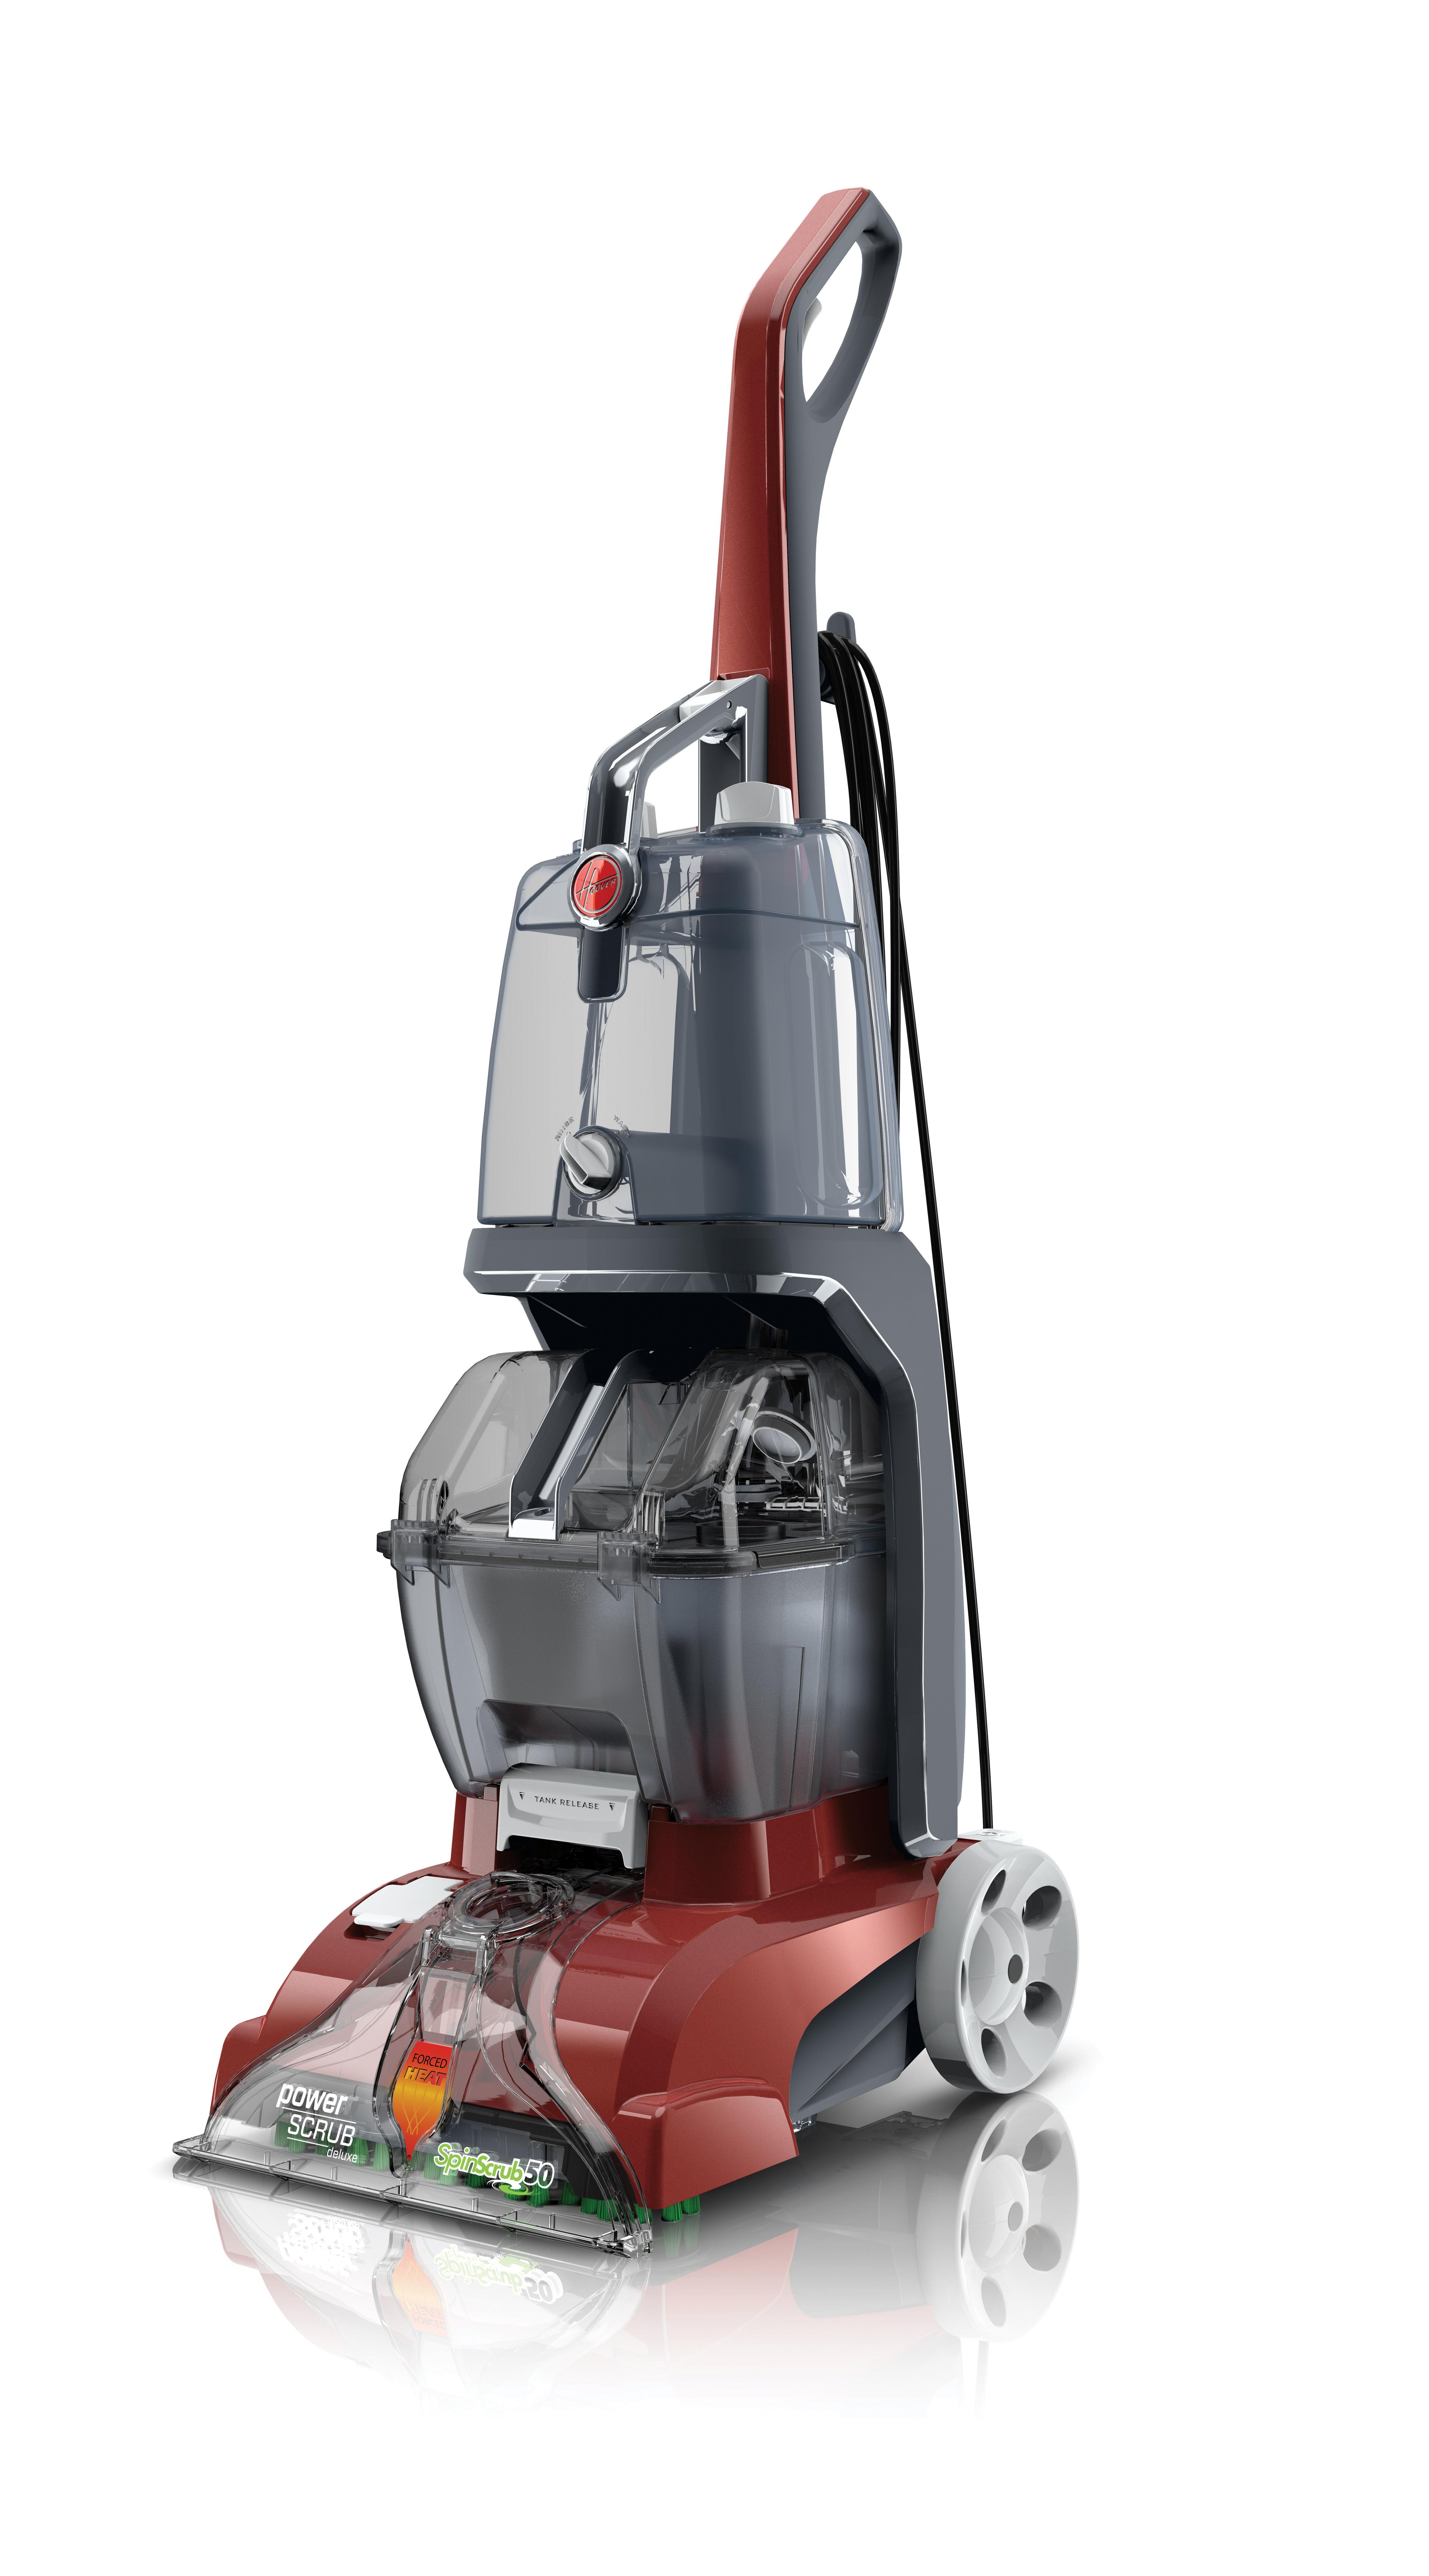 medium resolution of  power scrub deluxe carpet cleaner fh50150nc